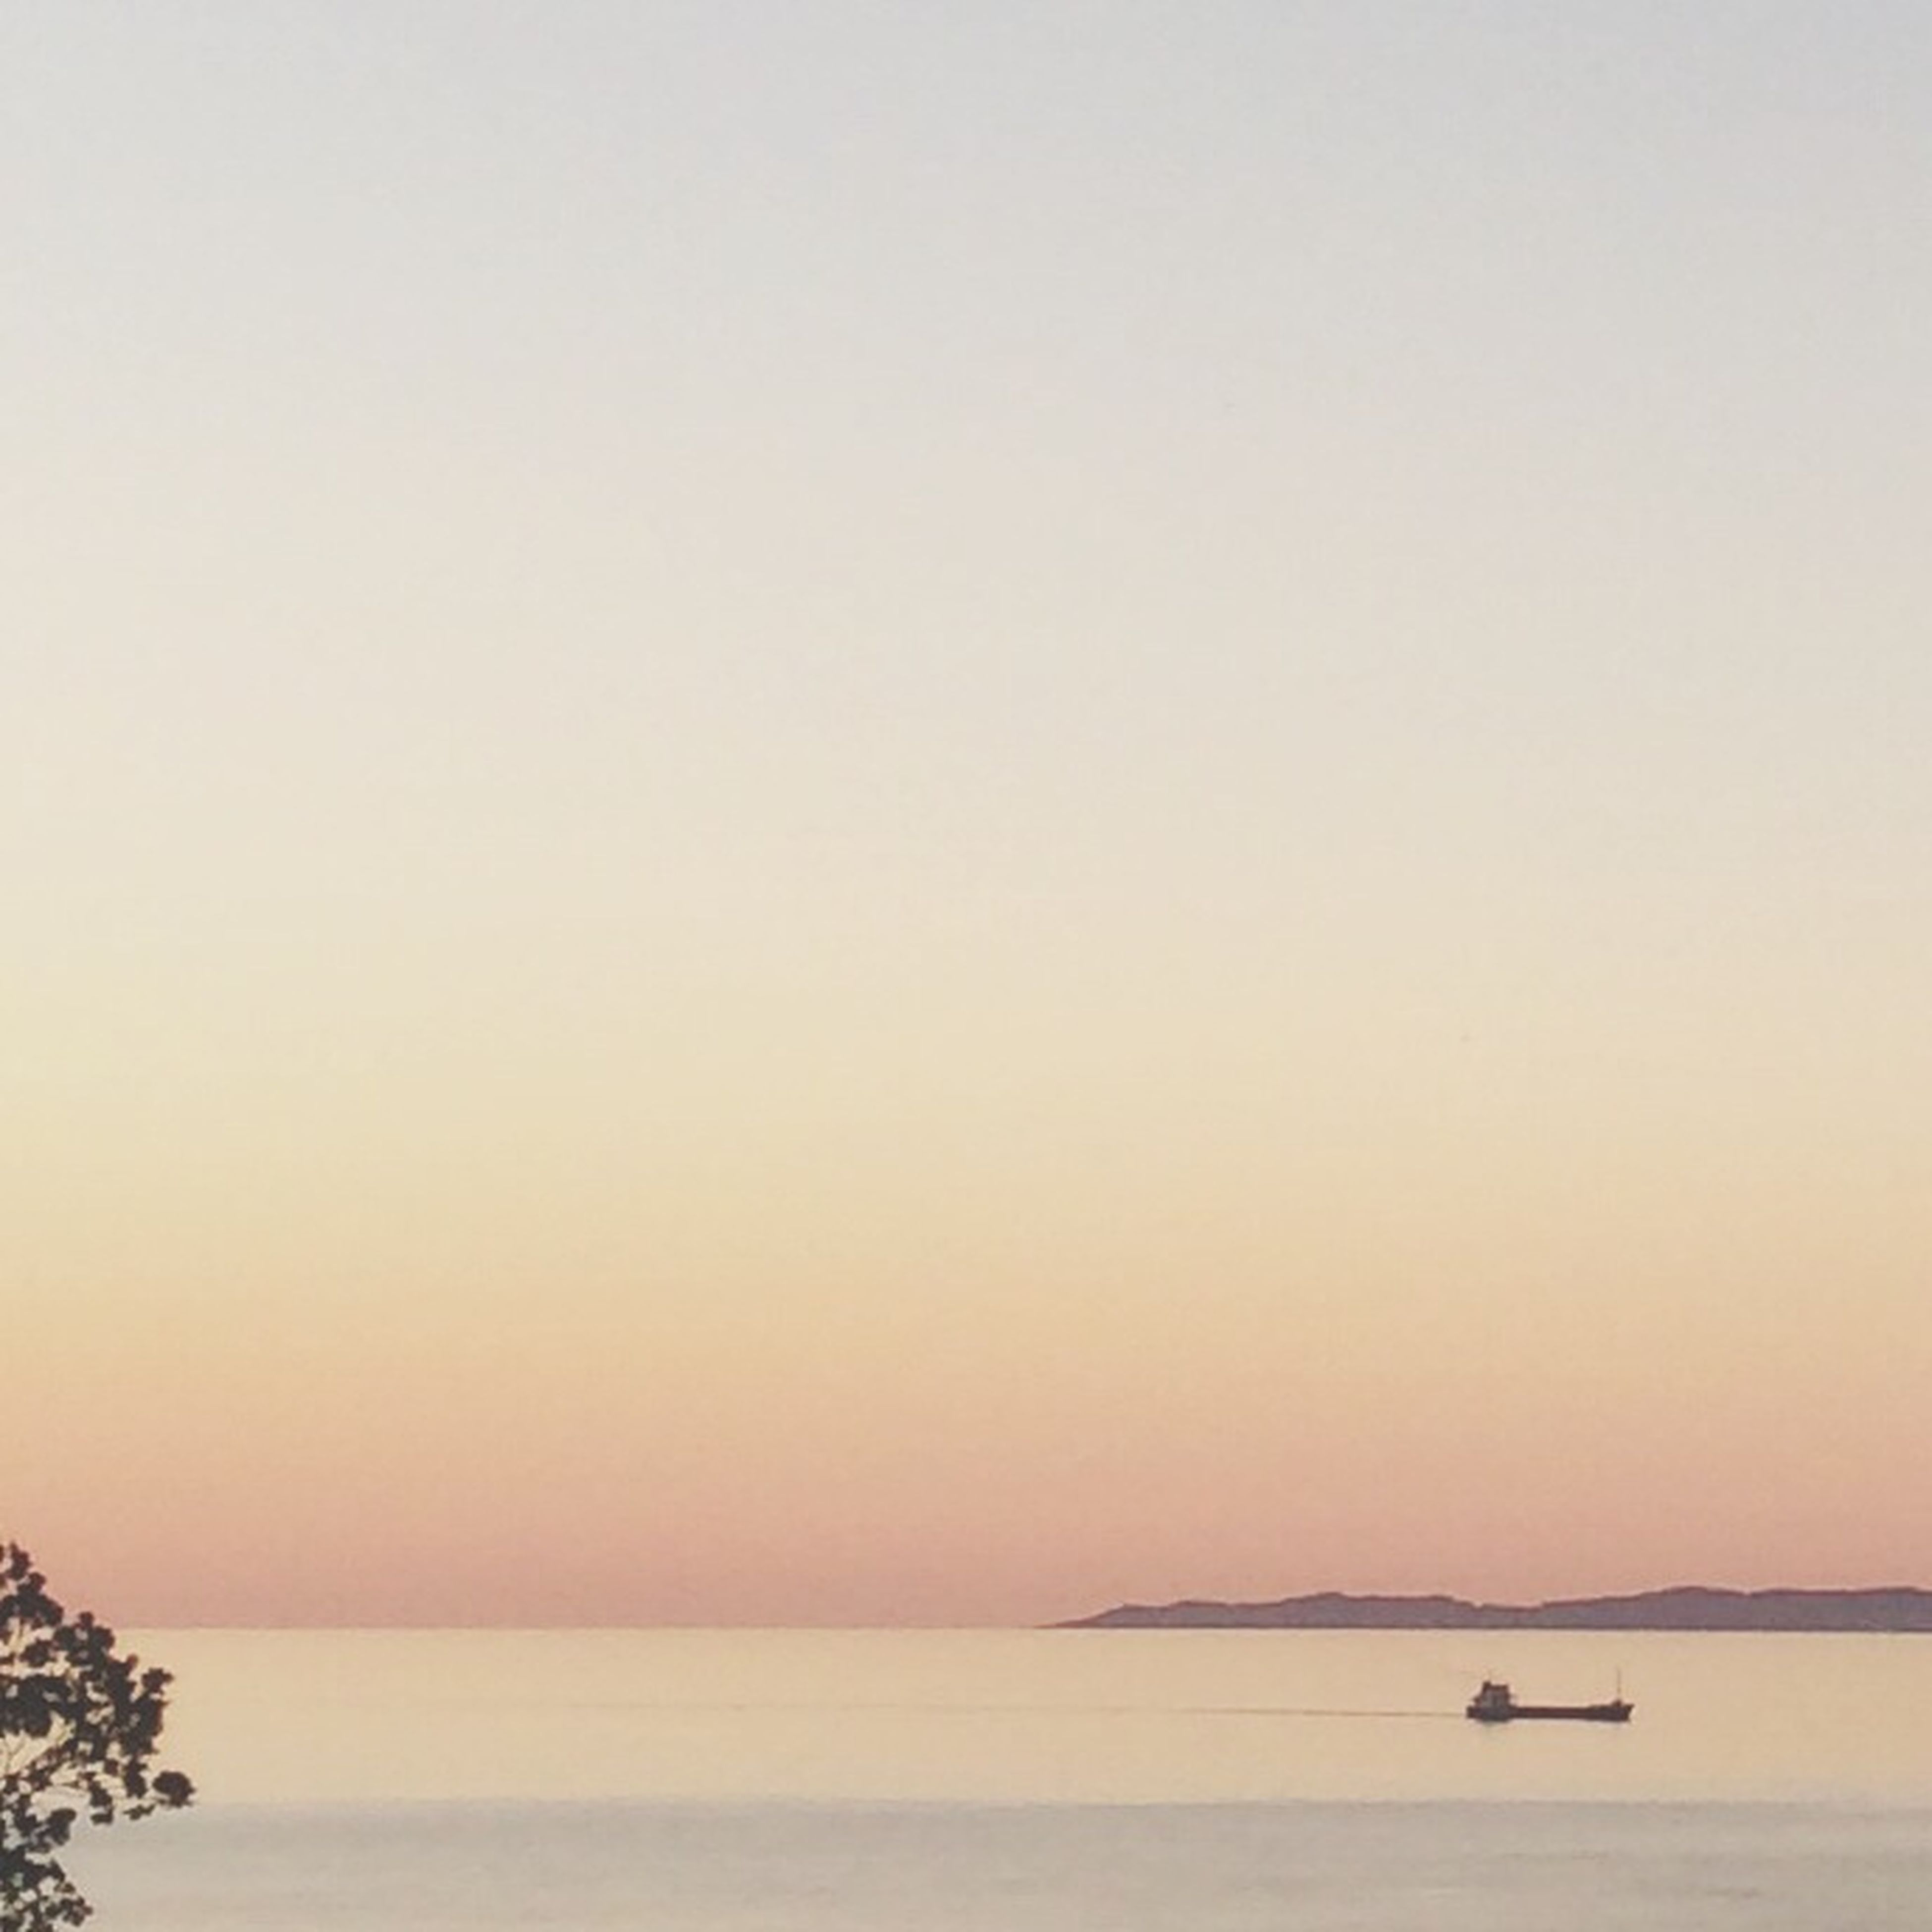 sea, horizon over water, water, sunset, copy space, tranquil scene, scenics, clear sky, tranquility, beauty in nature, orange color, nature, waterfront, idyllic, nautical vessel, silhouette, boat, transportation, seascape, sky